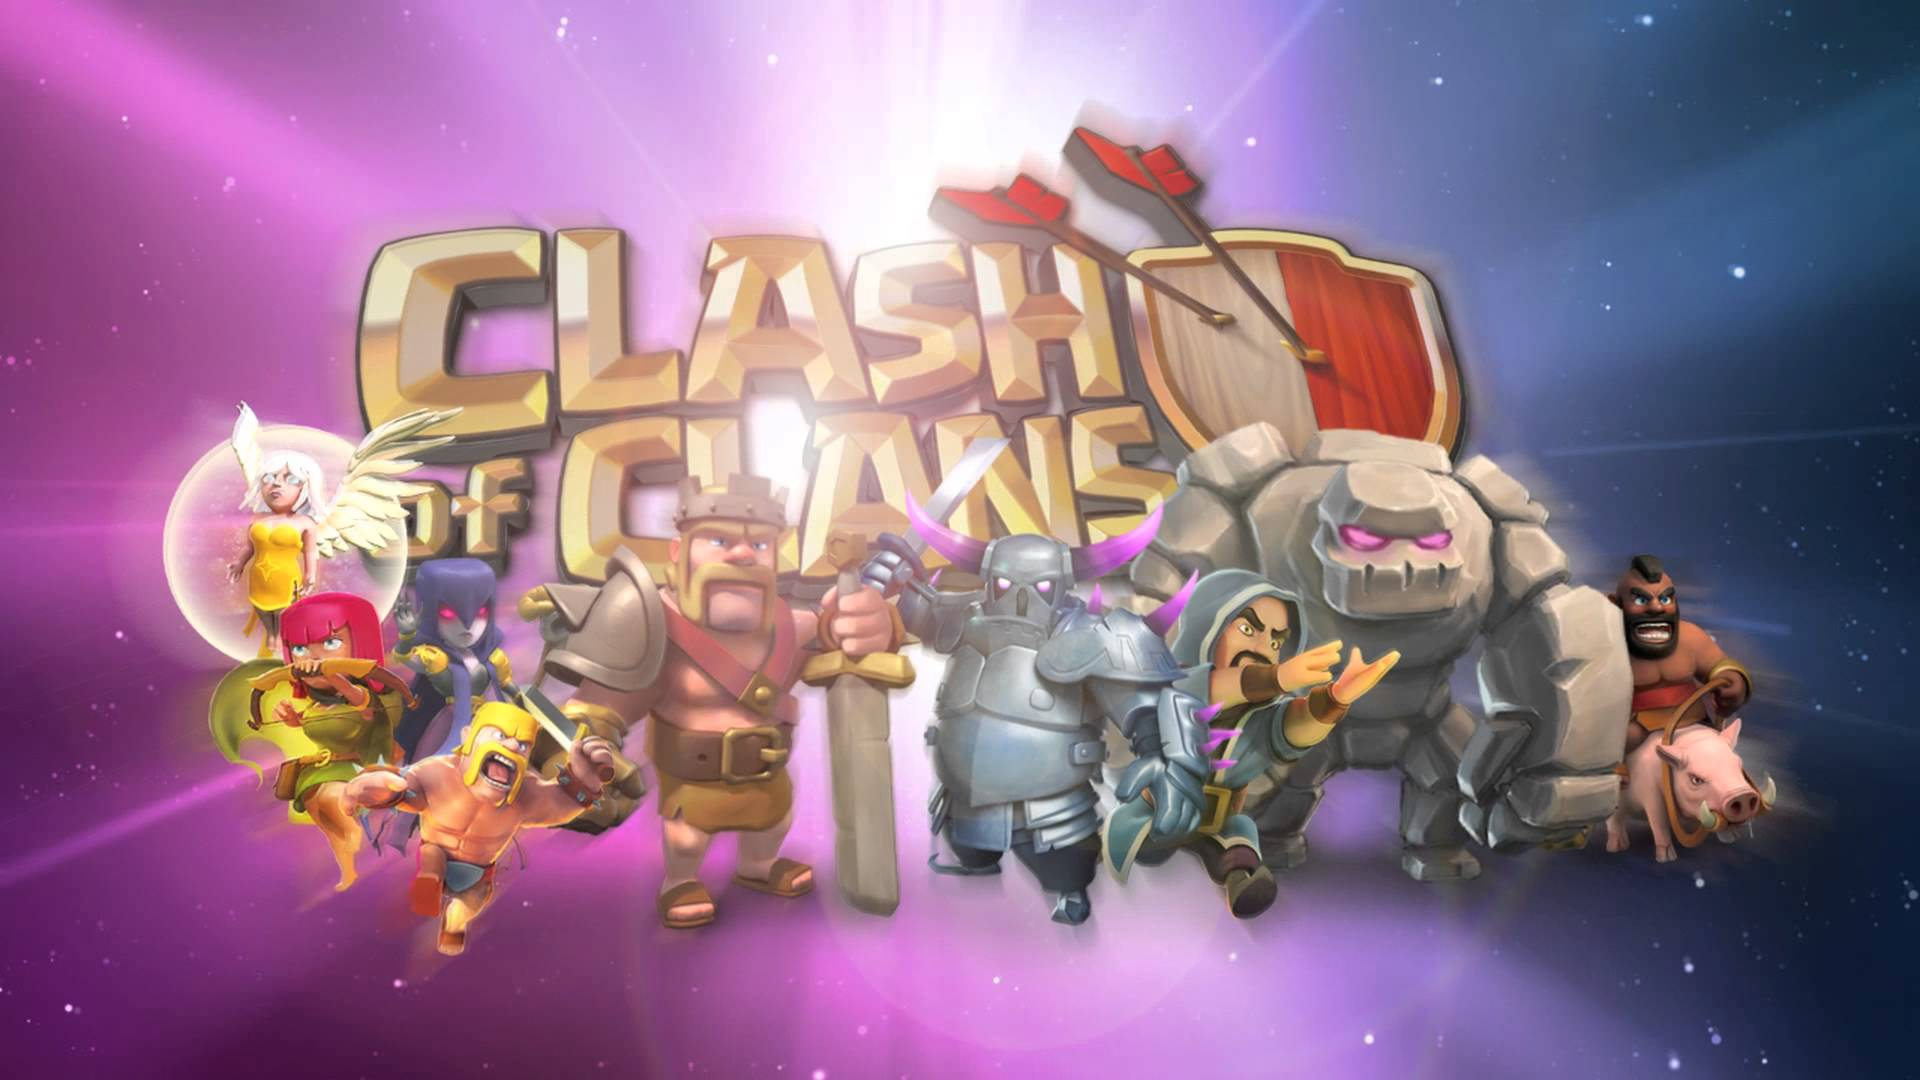 Clash of Clans :: HD Art, Wallpaper, Background, Channel Art ...